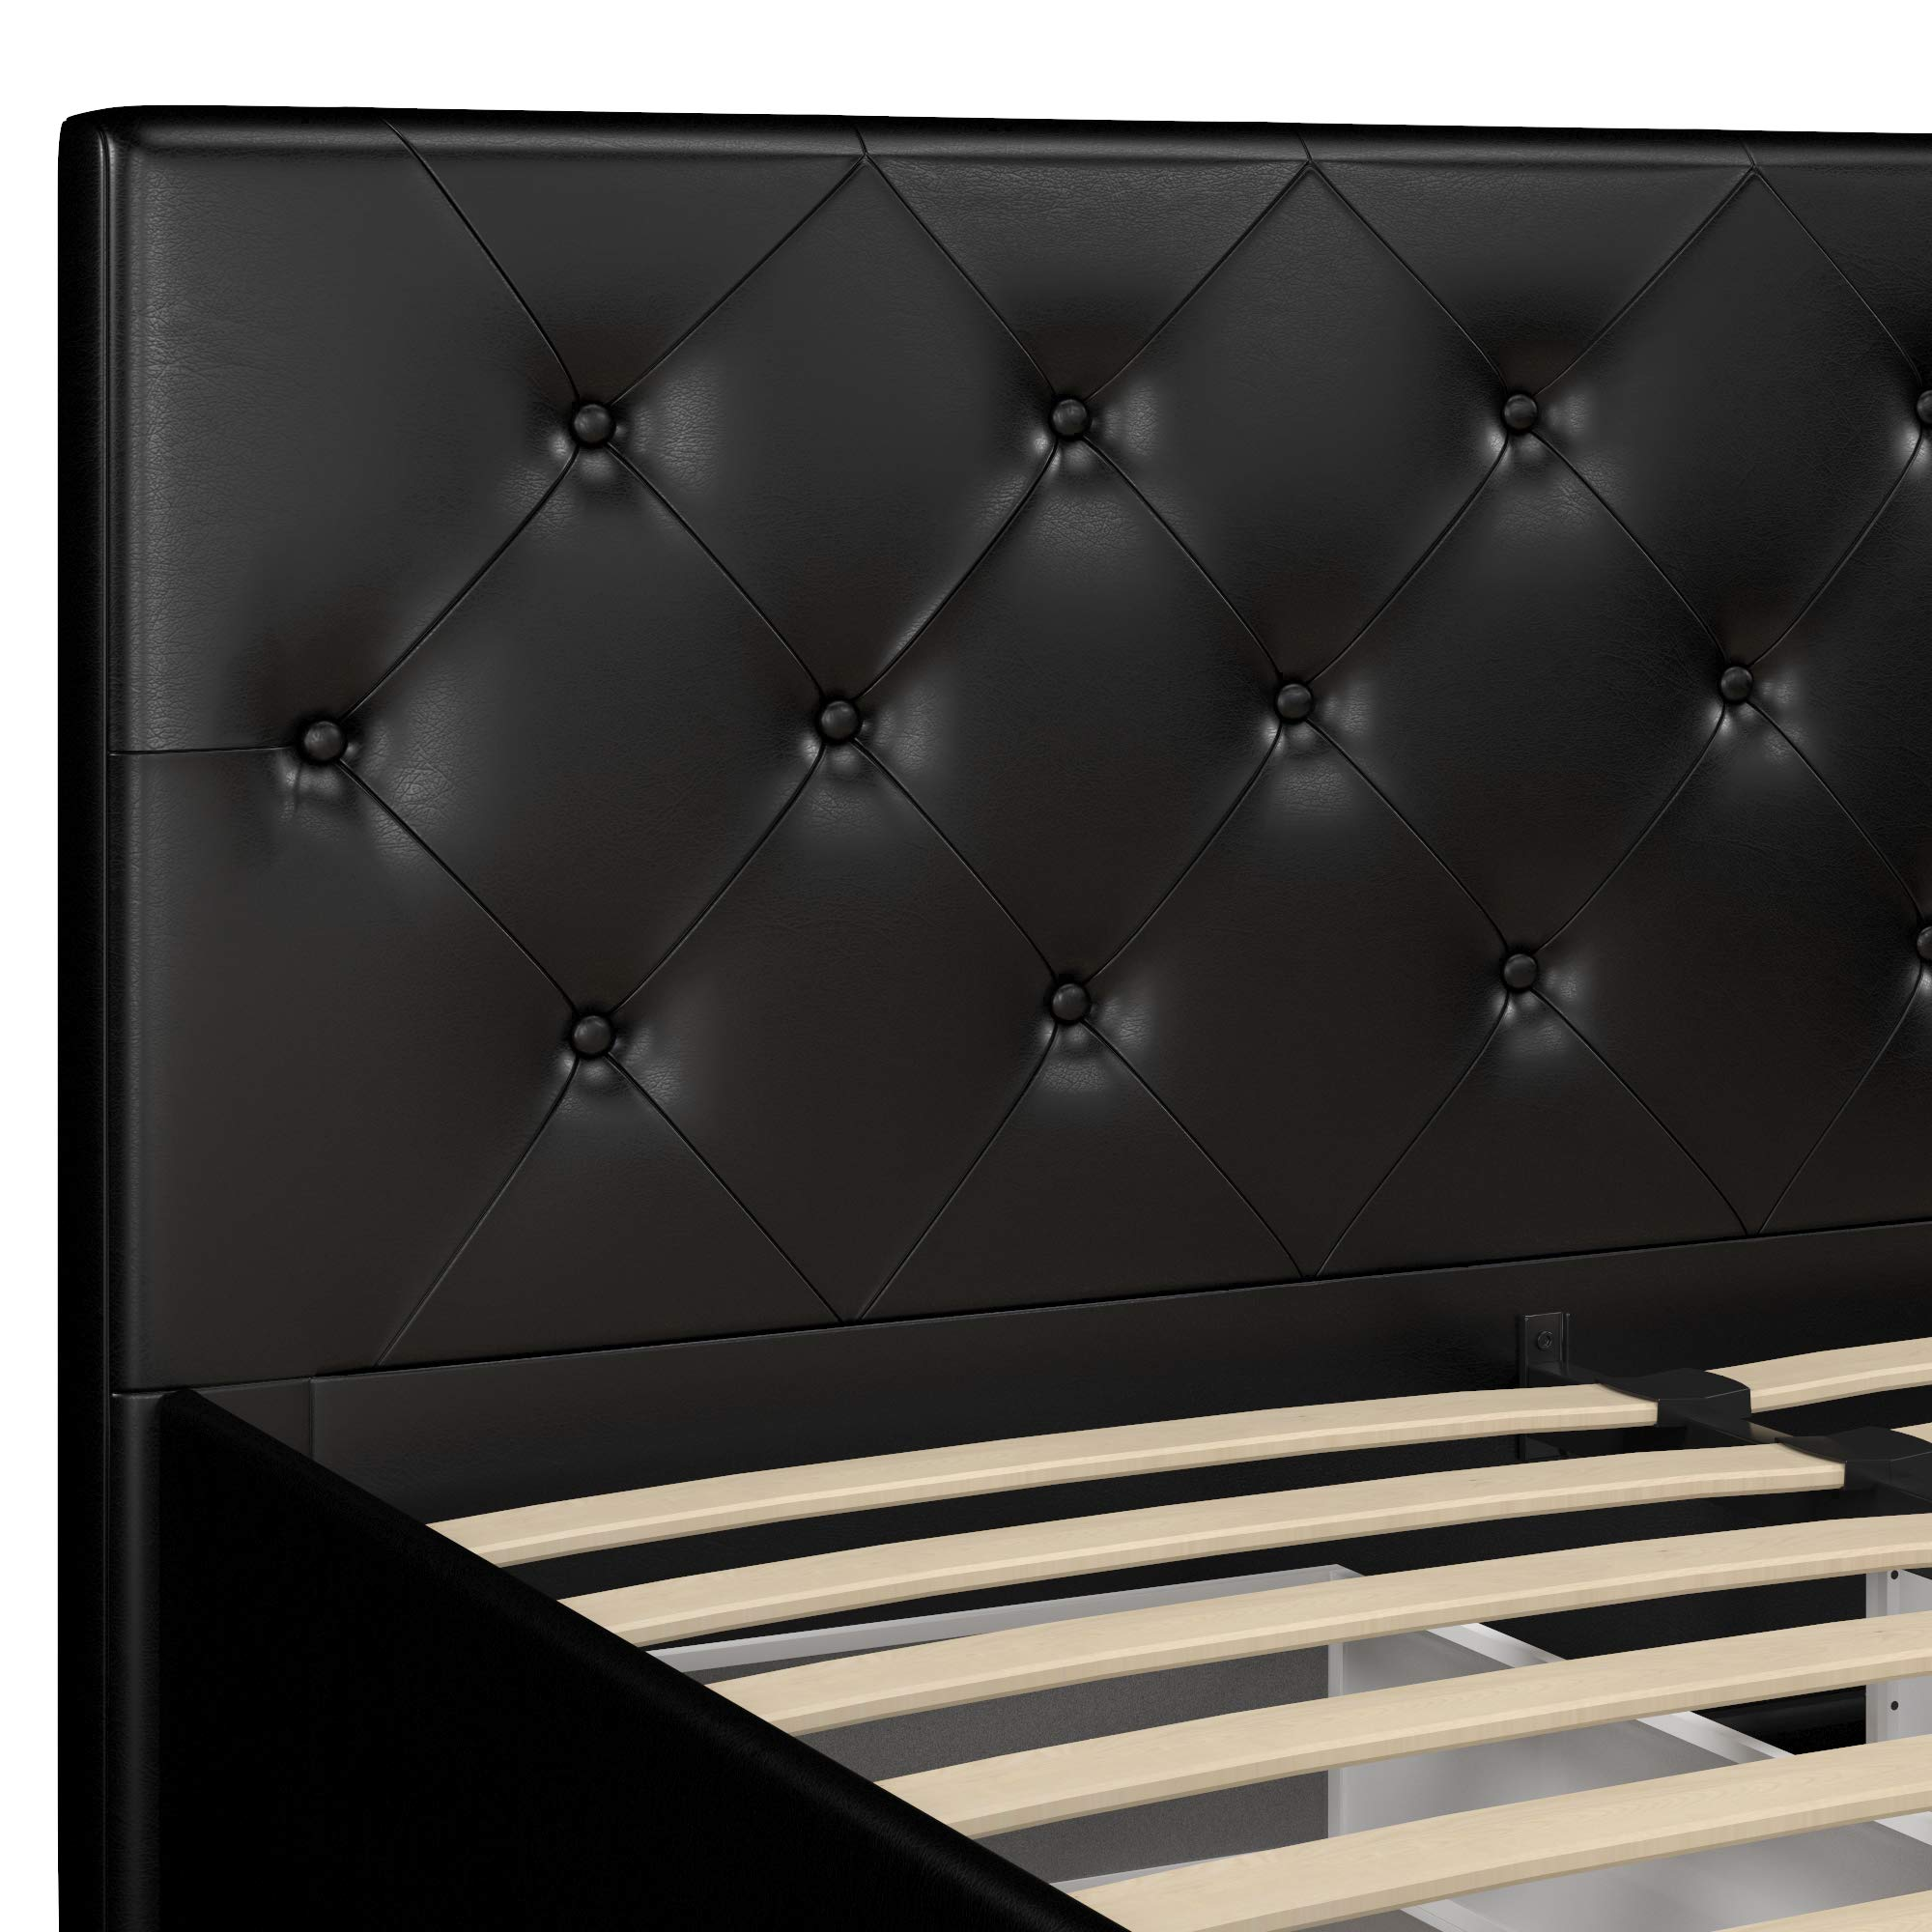 DHP Dakota Upholstered Platform Bed with Storage Drawers, Black Faux Leather, Queen by DHP (Image #13)